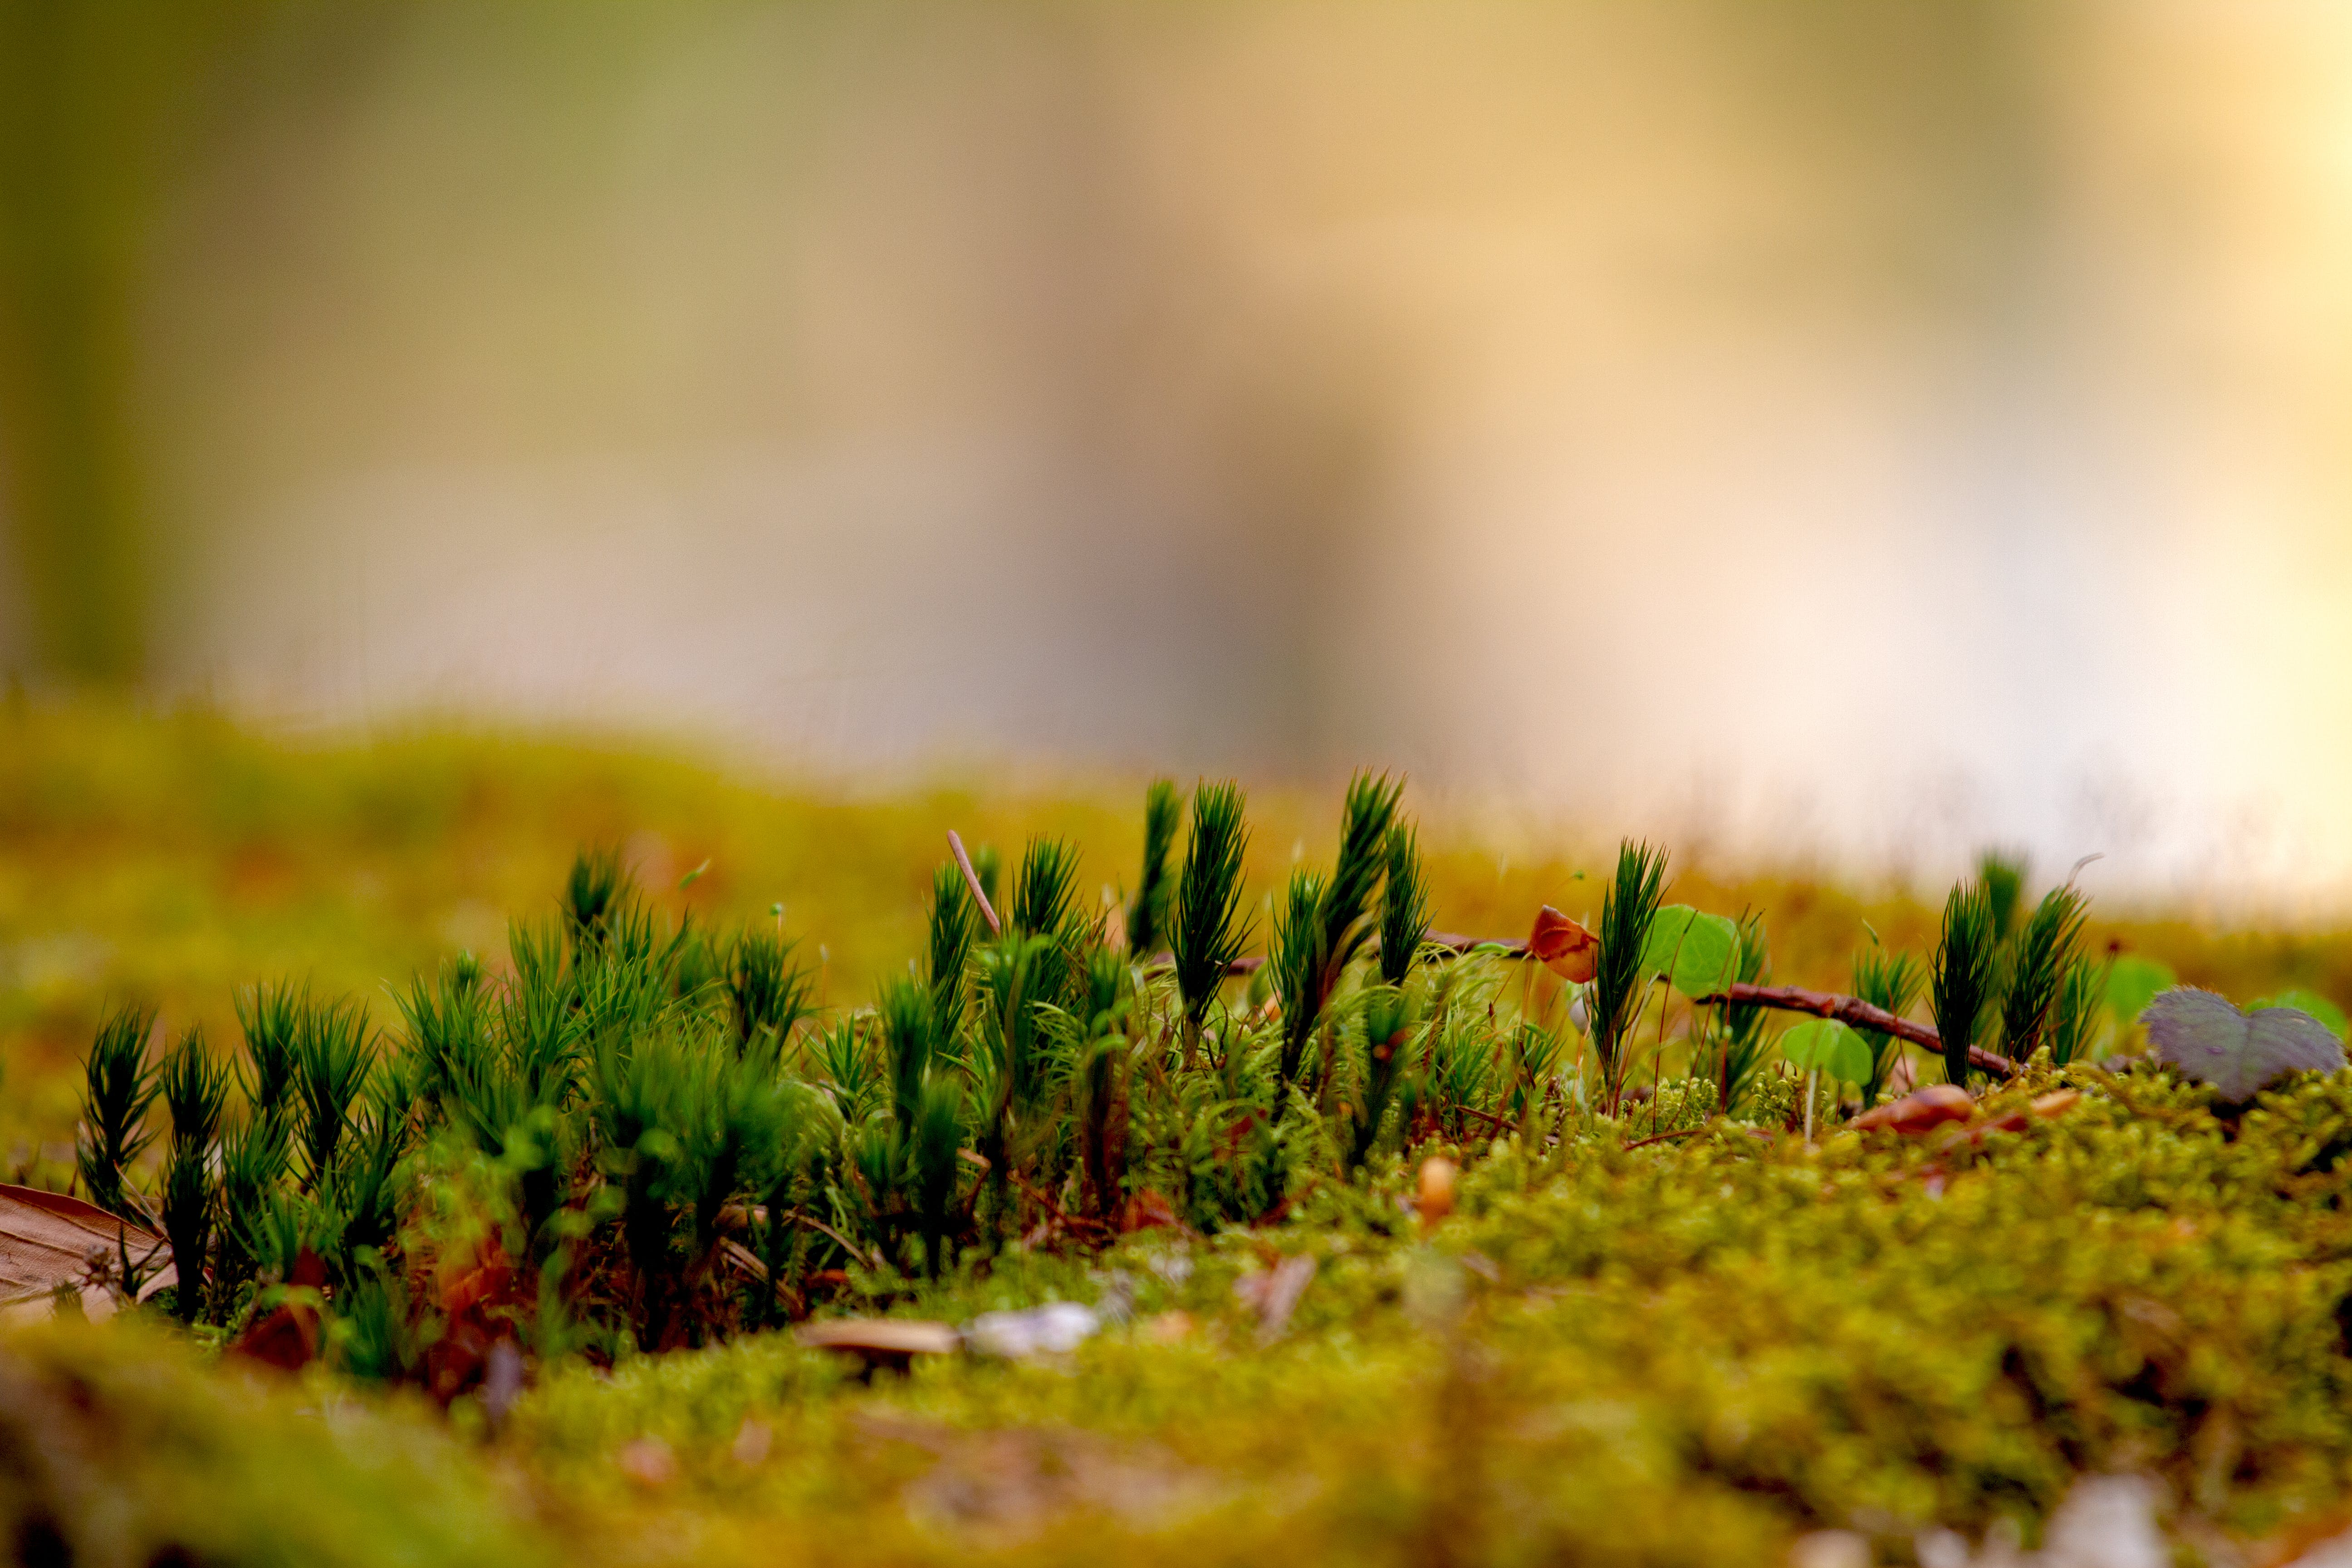 Selective Focus Photo of Green Grasses